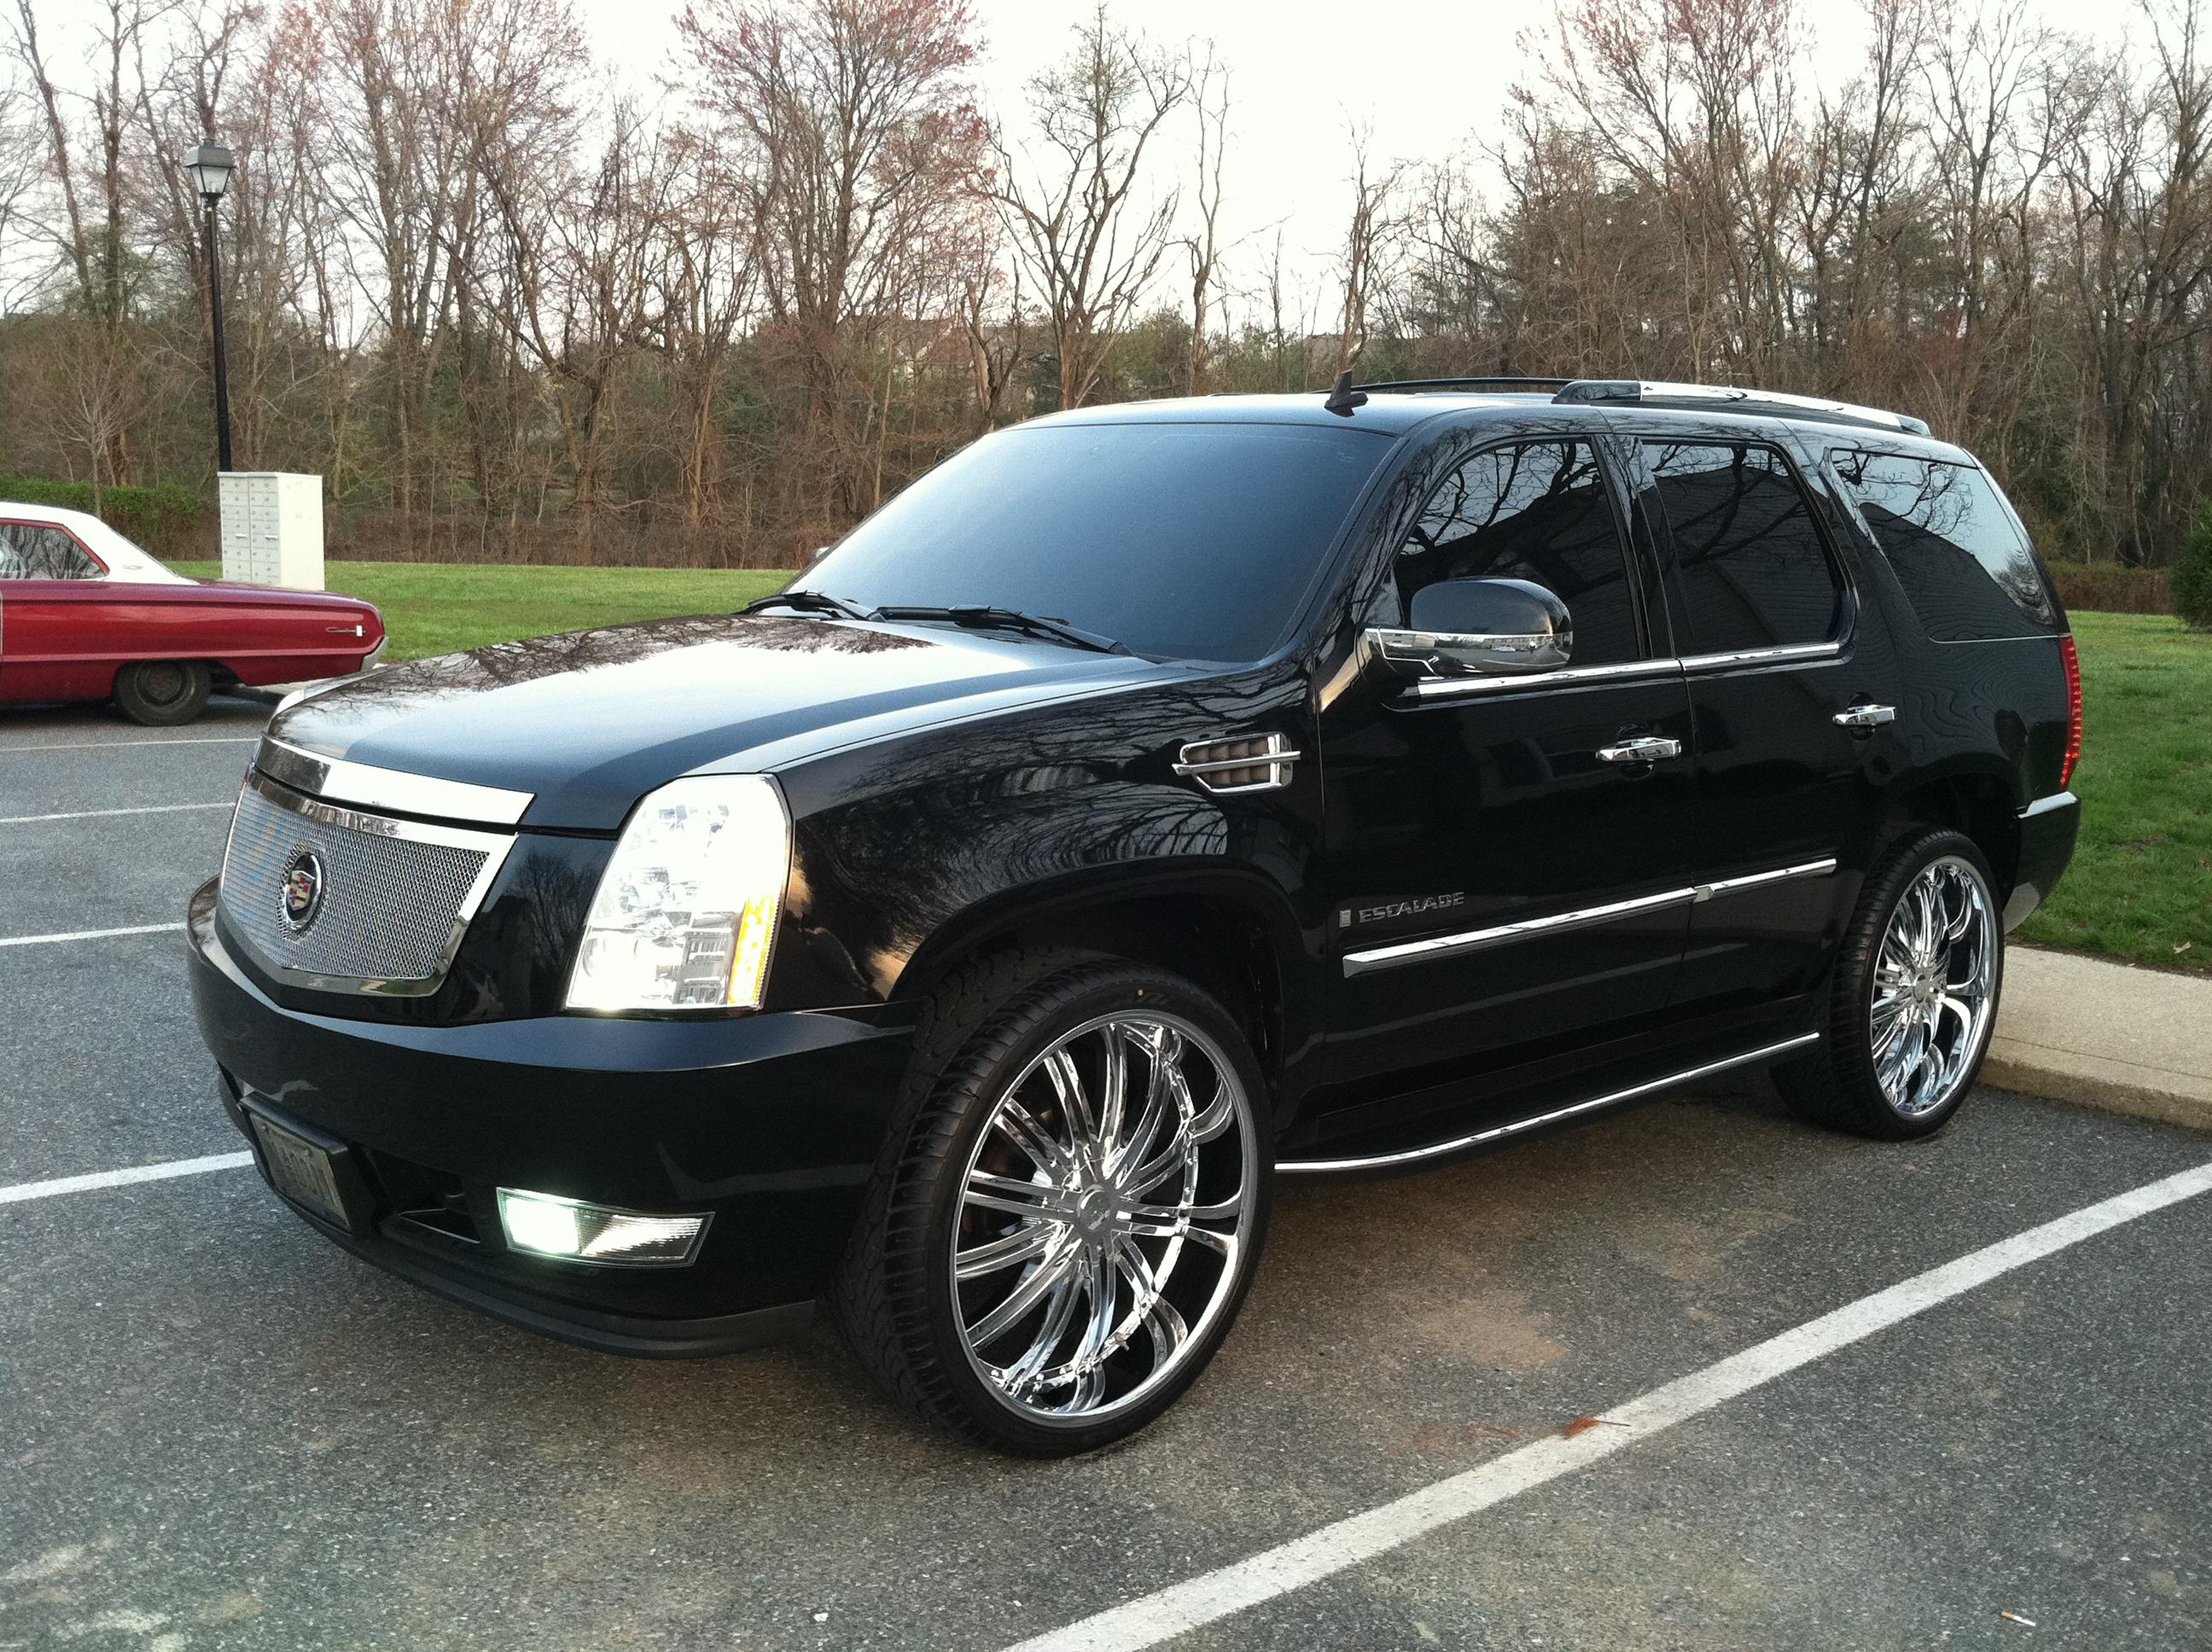 hollywood19 2007 cadillac escaladesport utility 4d specs photos modification info at cardomain. Black Bedroom Furniture Sets. Home Design Ideas